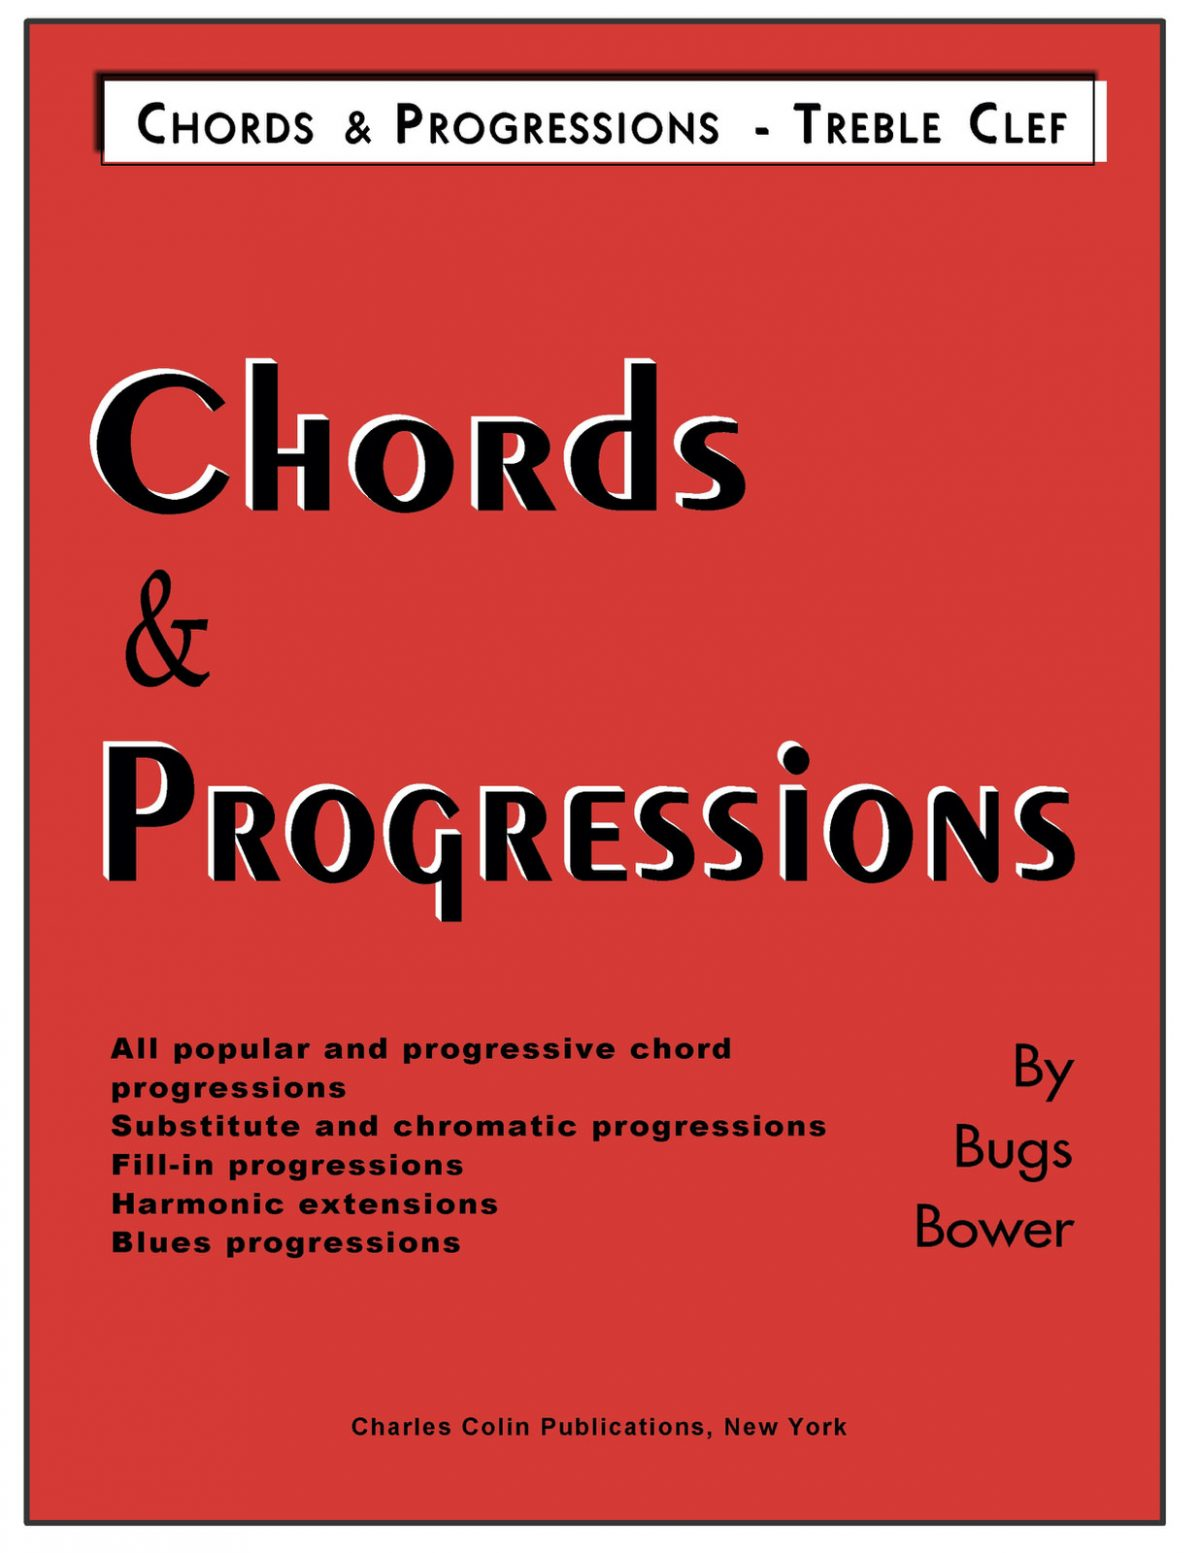 Bower, Chords & Progressions